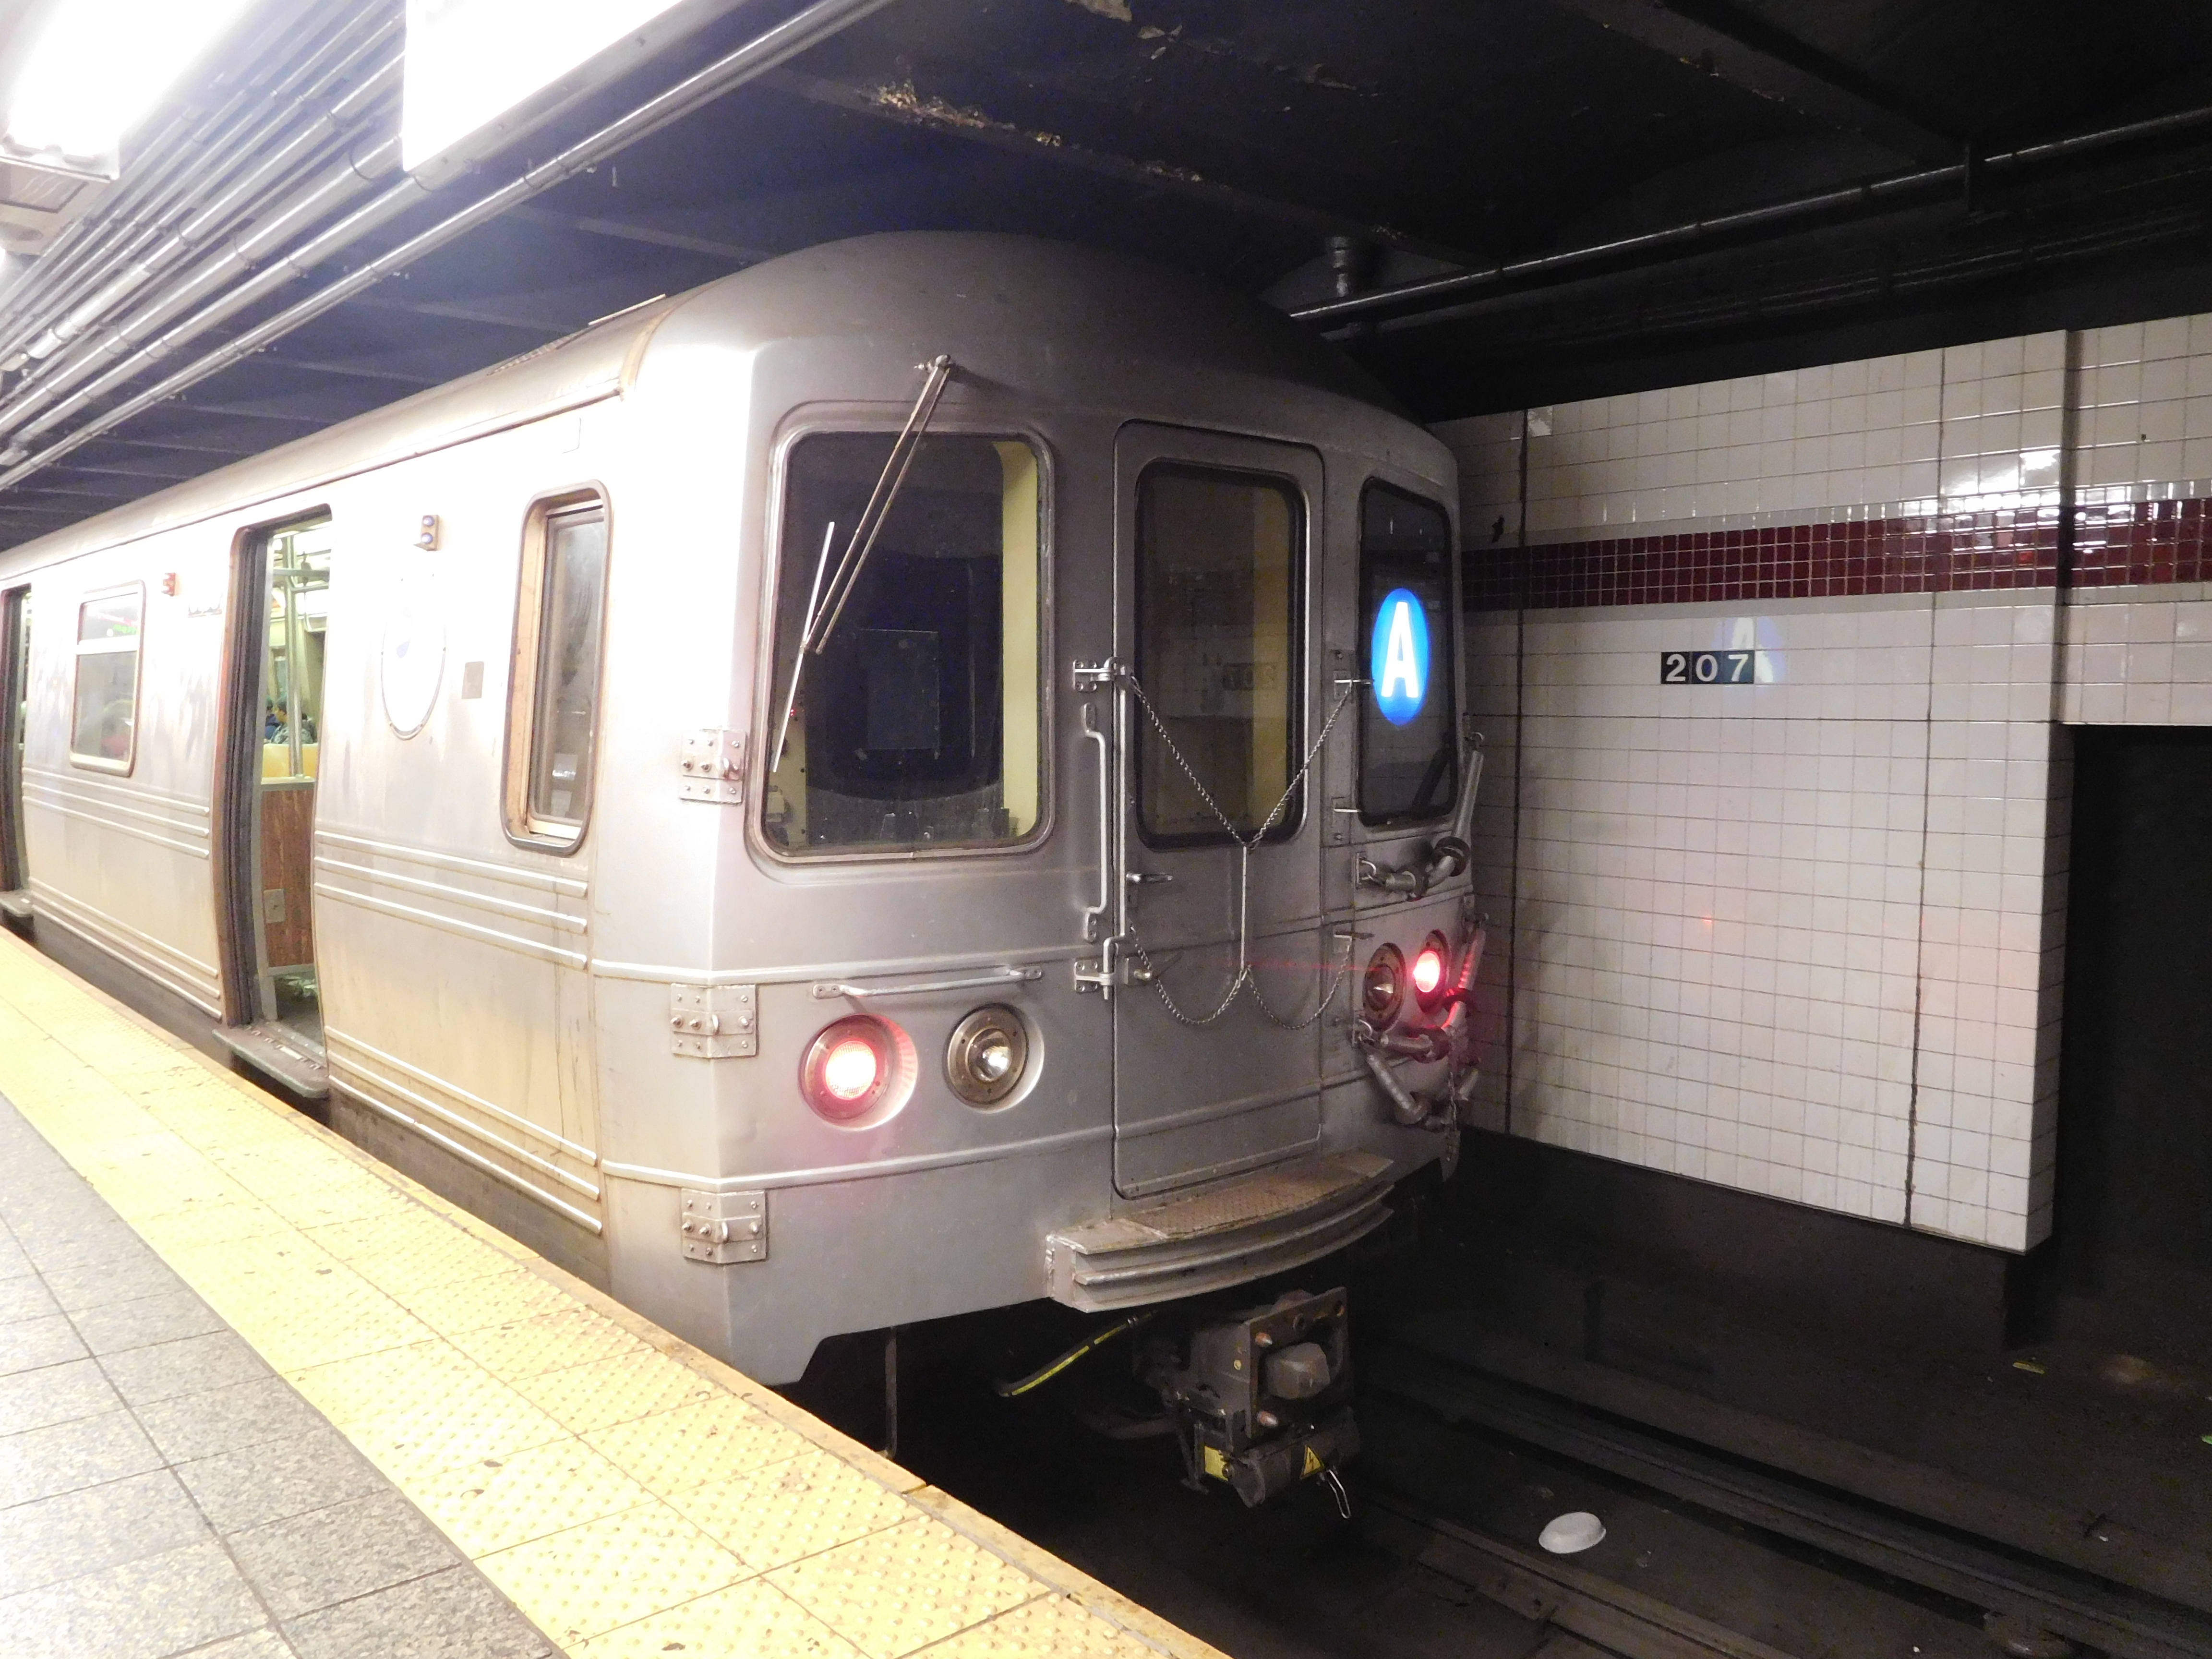 File An A Train In R46 Service At Inwood 207th Street Jpg Wikimedia Commons